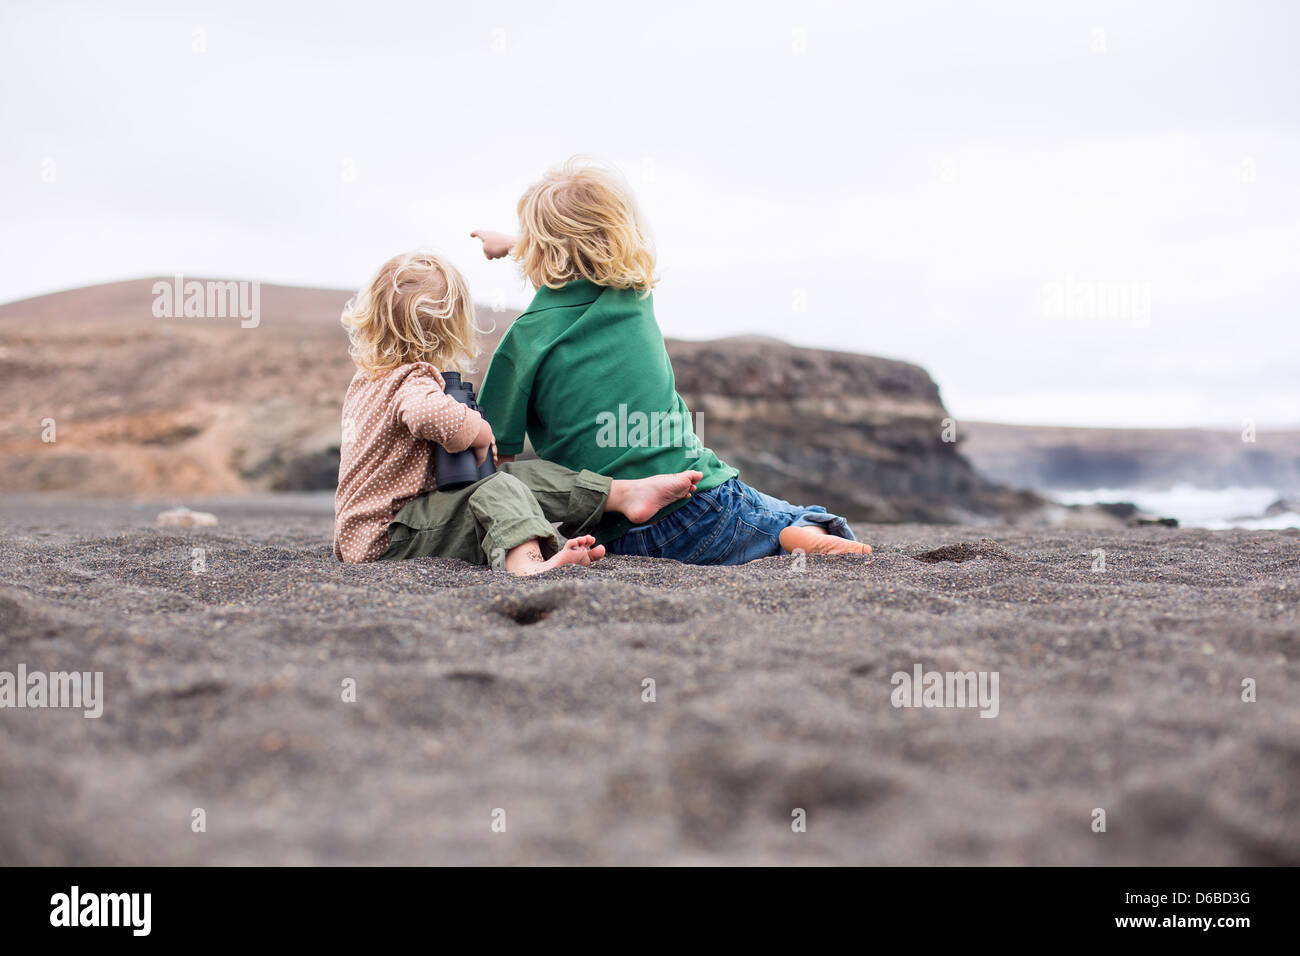 Children sitting in sand on beach - Stock Image